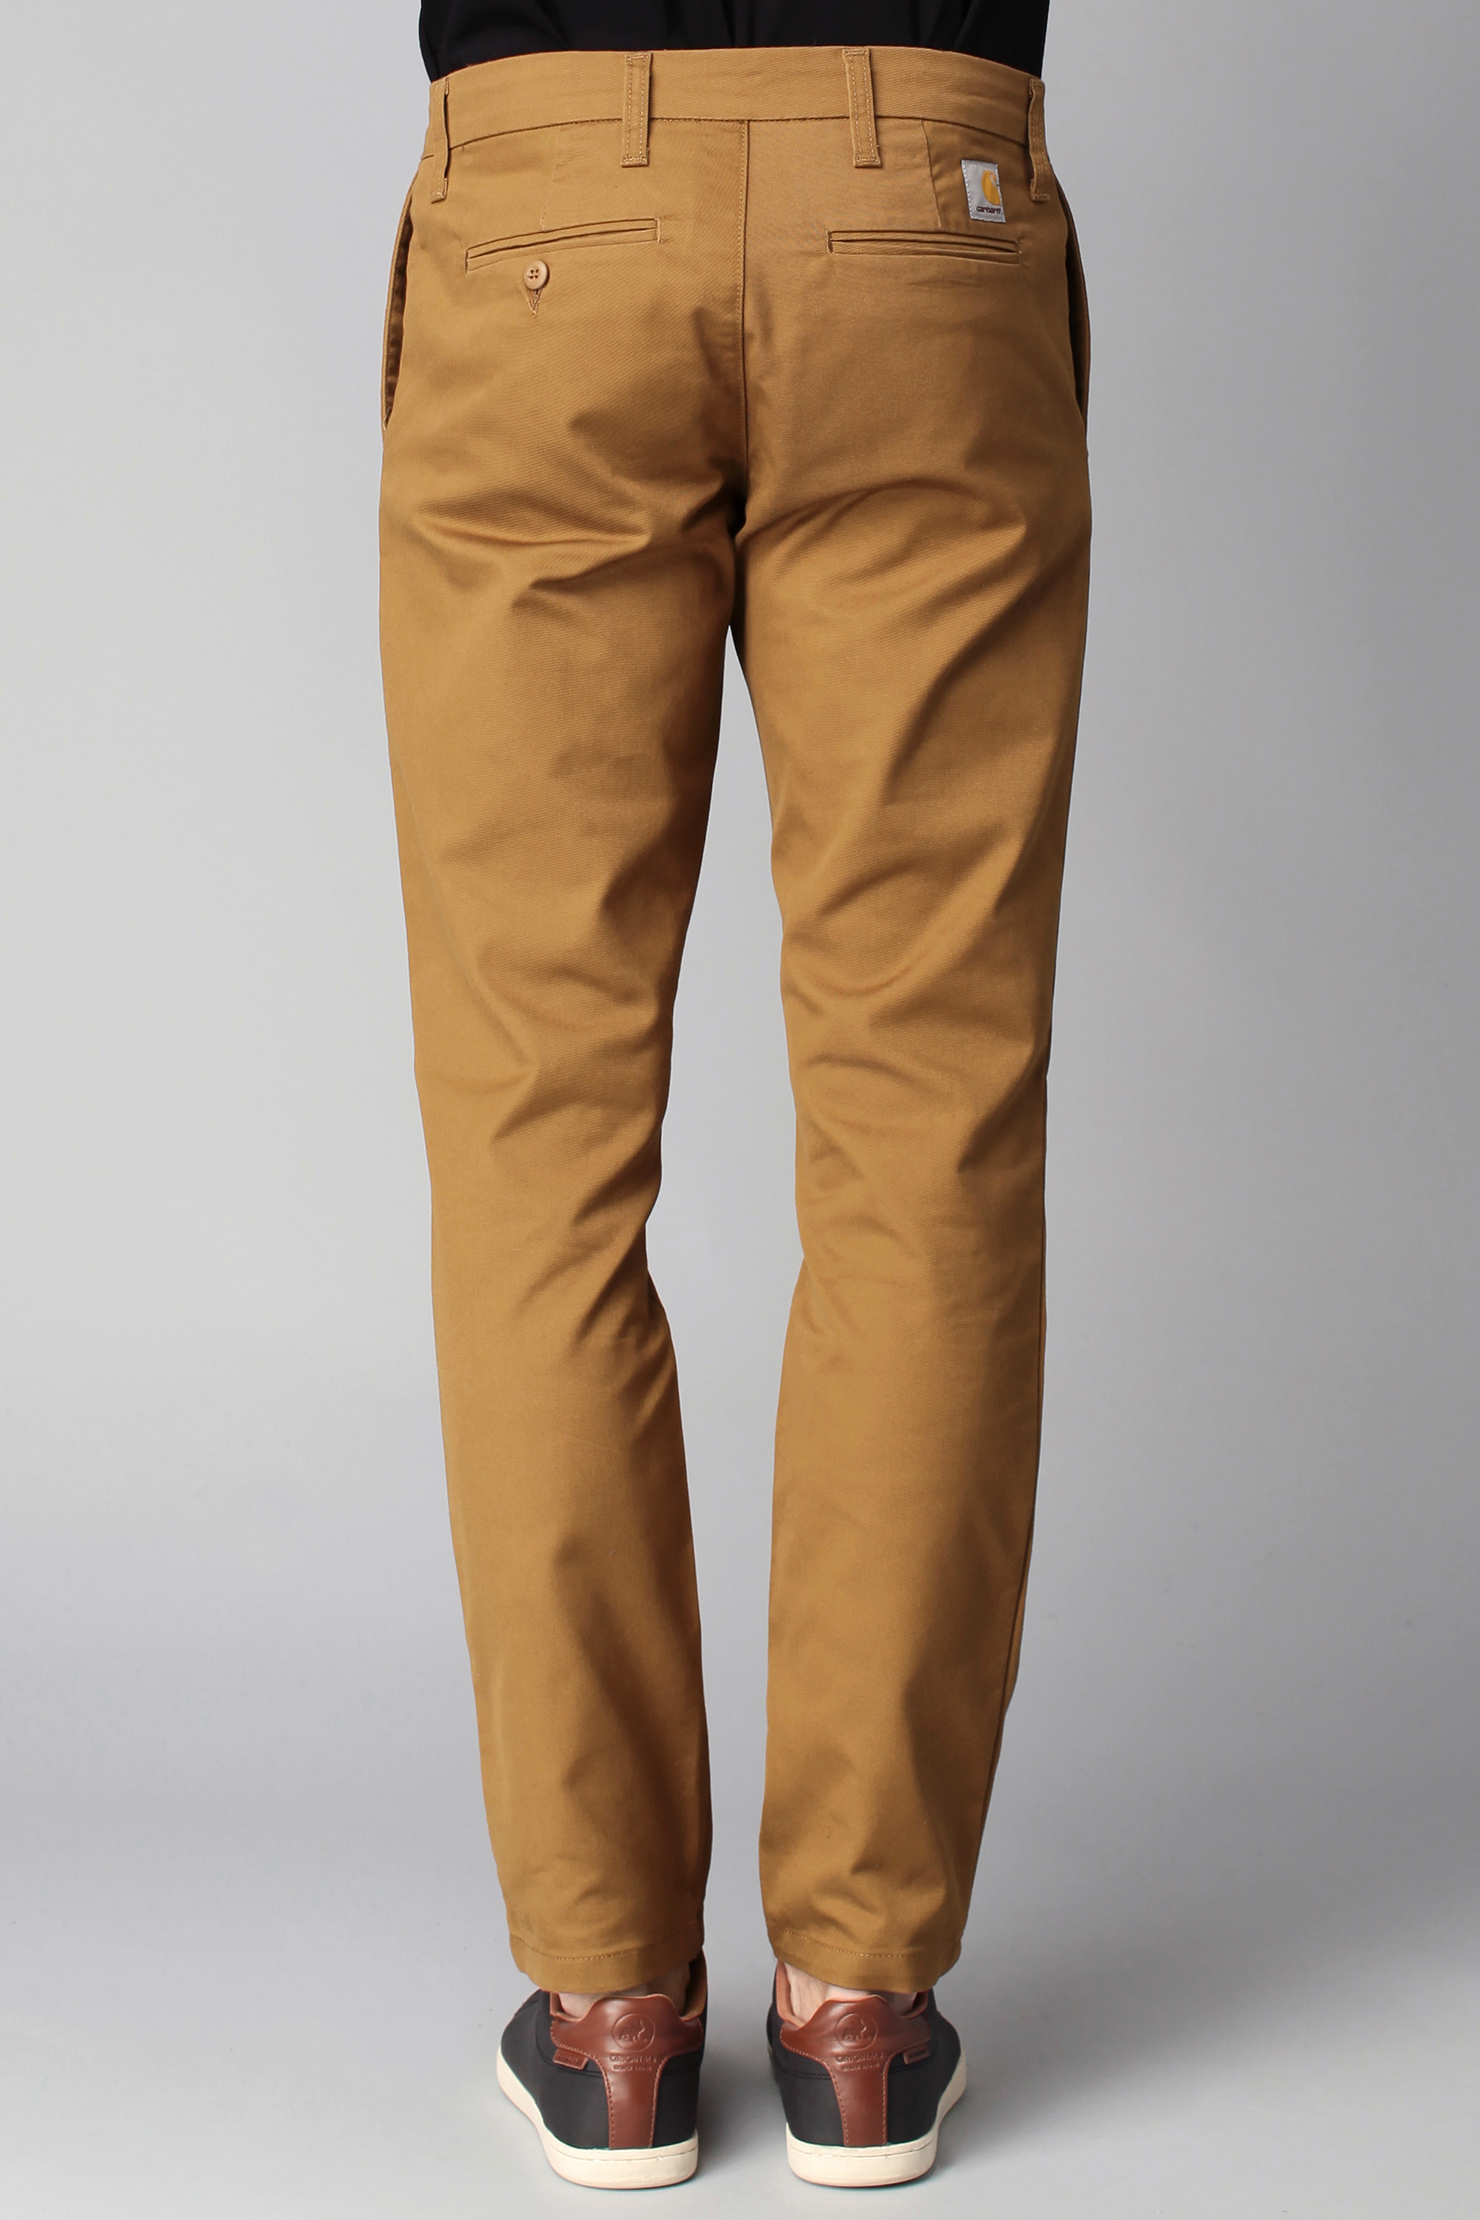 Enjoy free shipping and easy returns every day at Kohl's. Find great deals on Mens Brown Pants at Kohl's today!